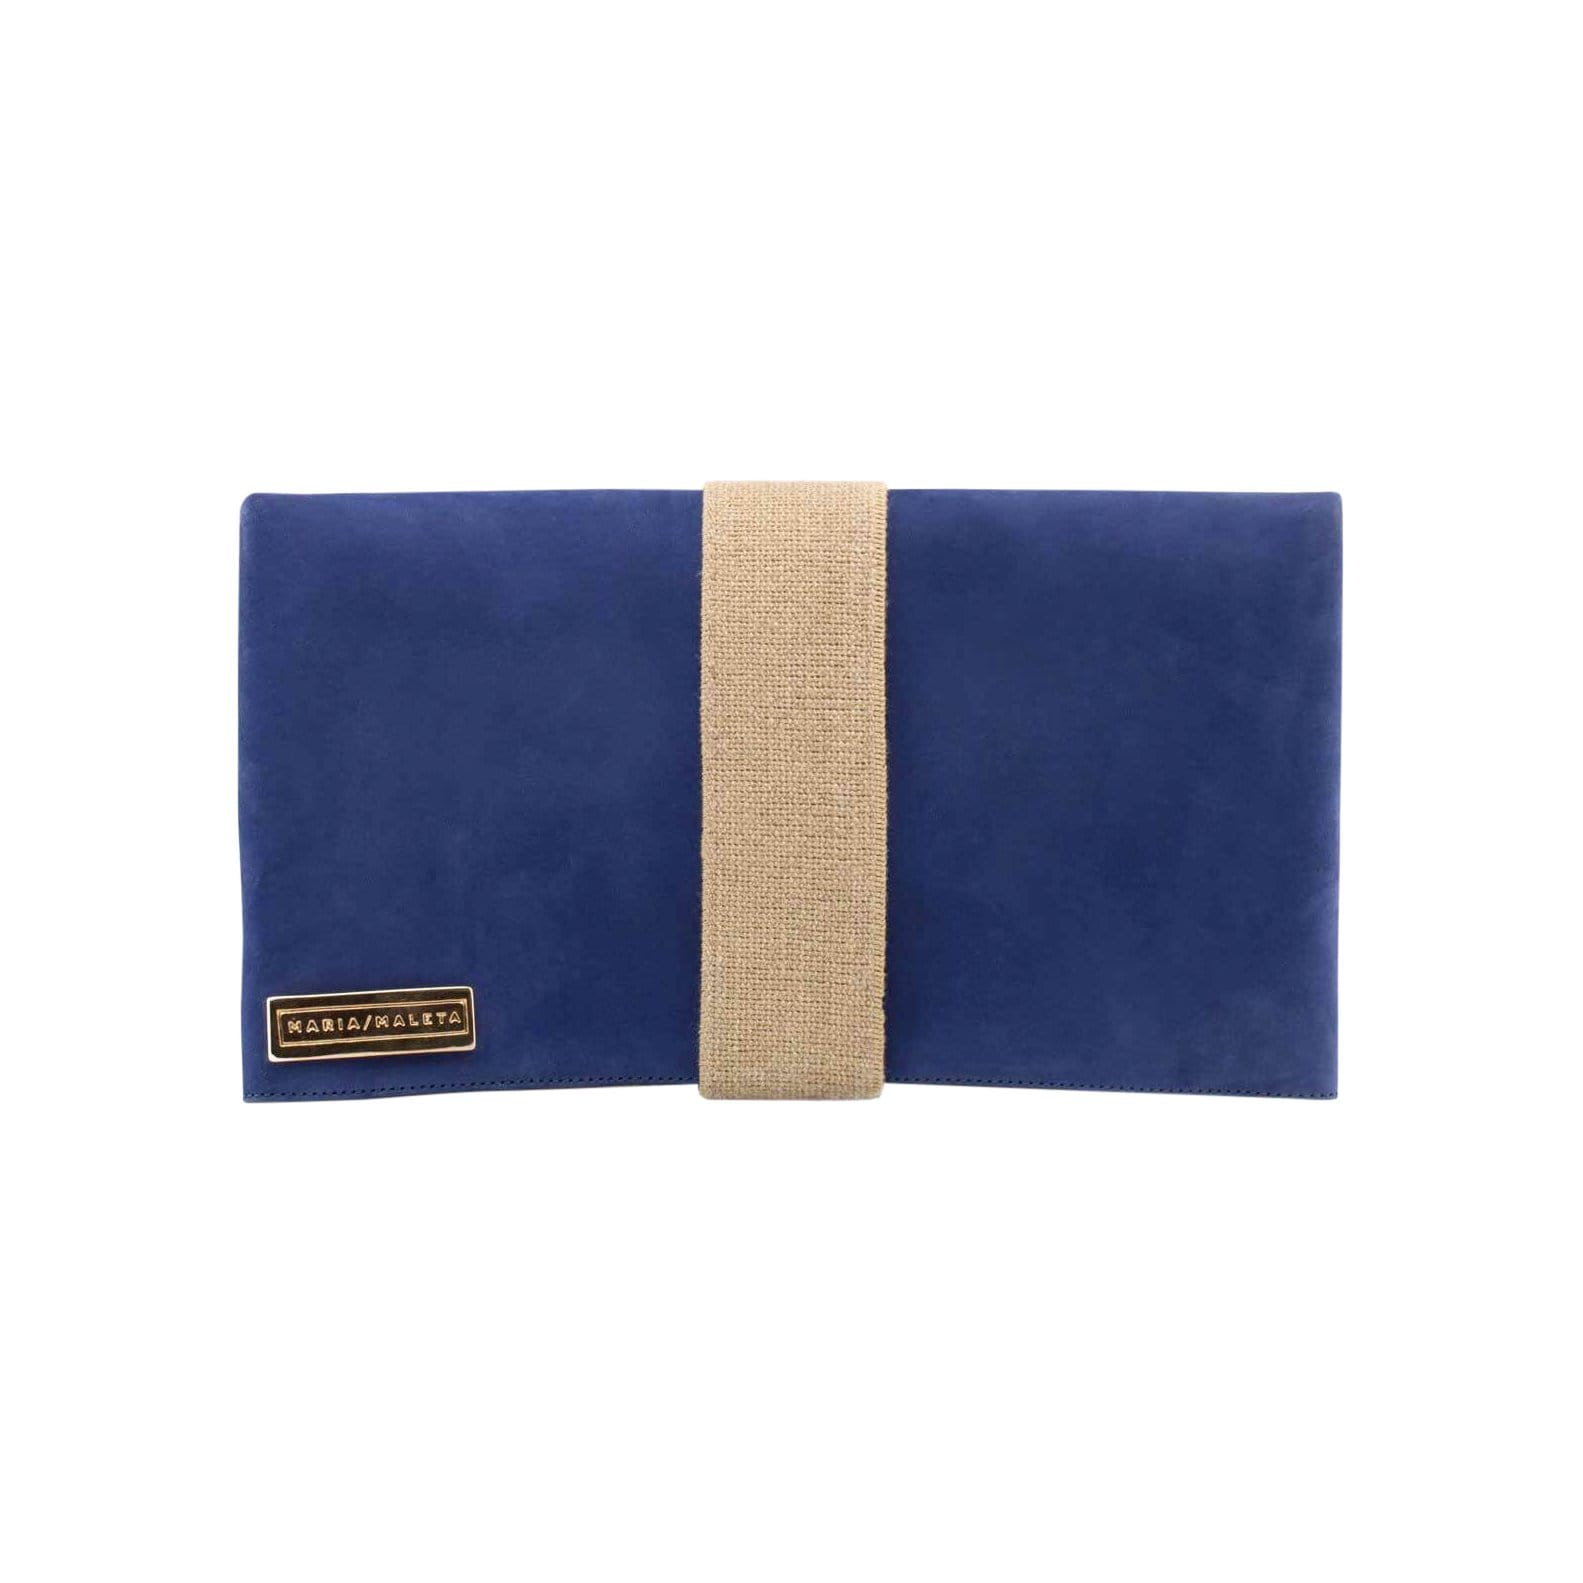 mariamaleta Handbags + Clutches A&O Navy Blue Clutch Bag